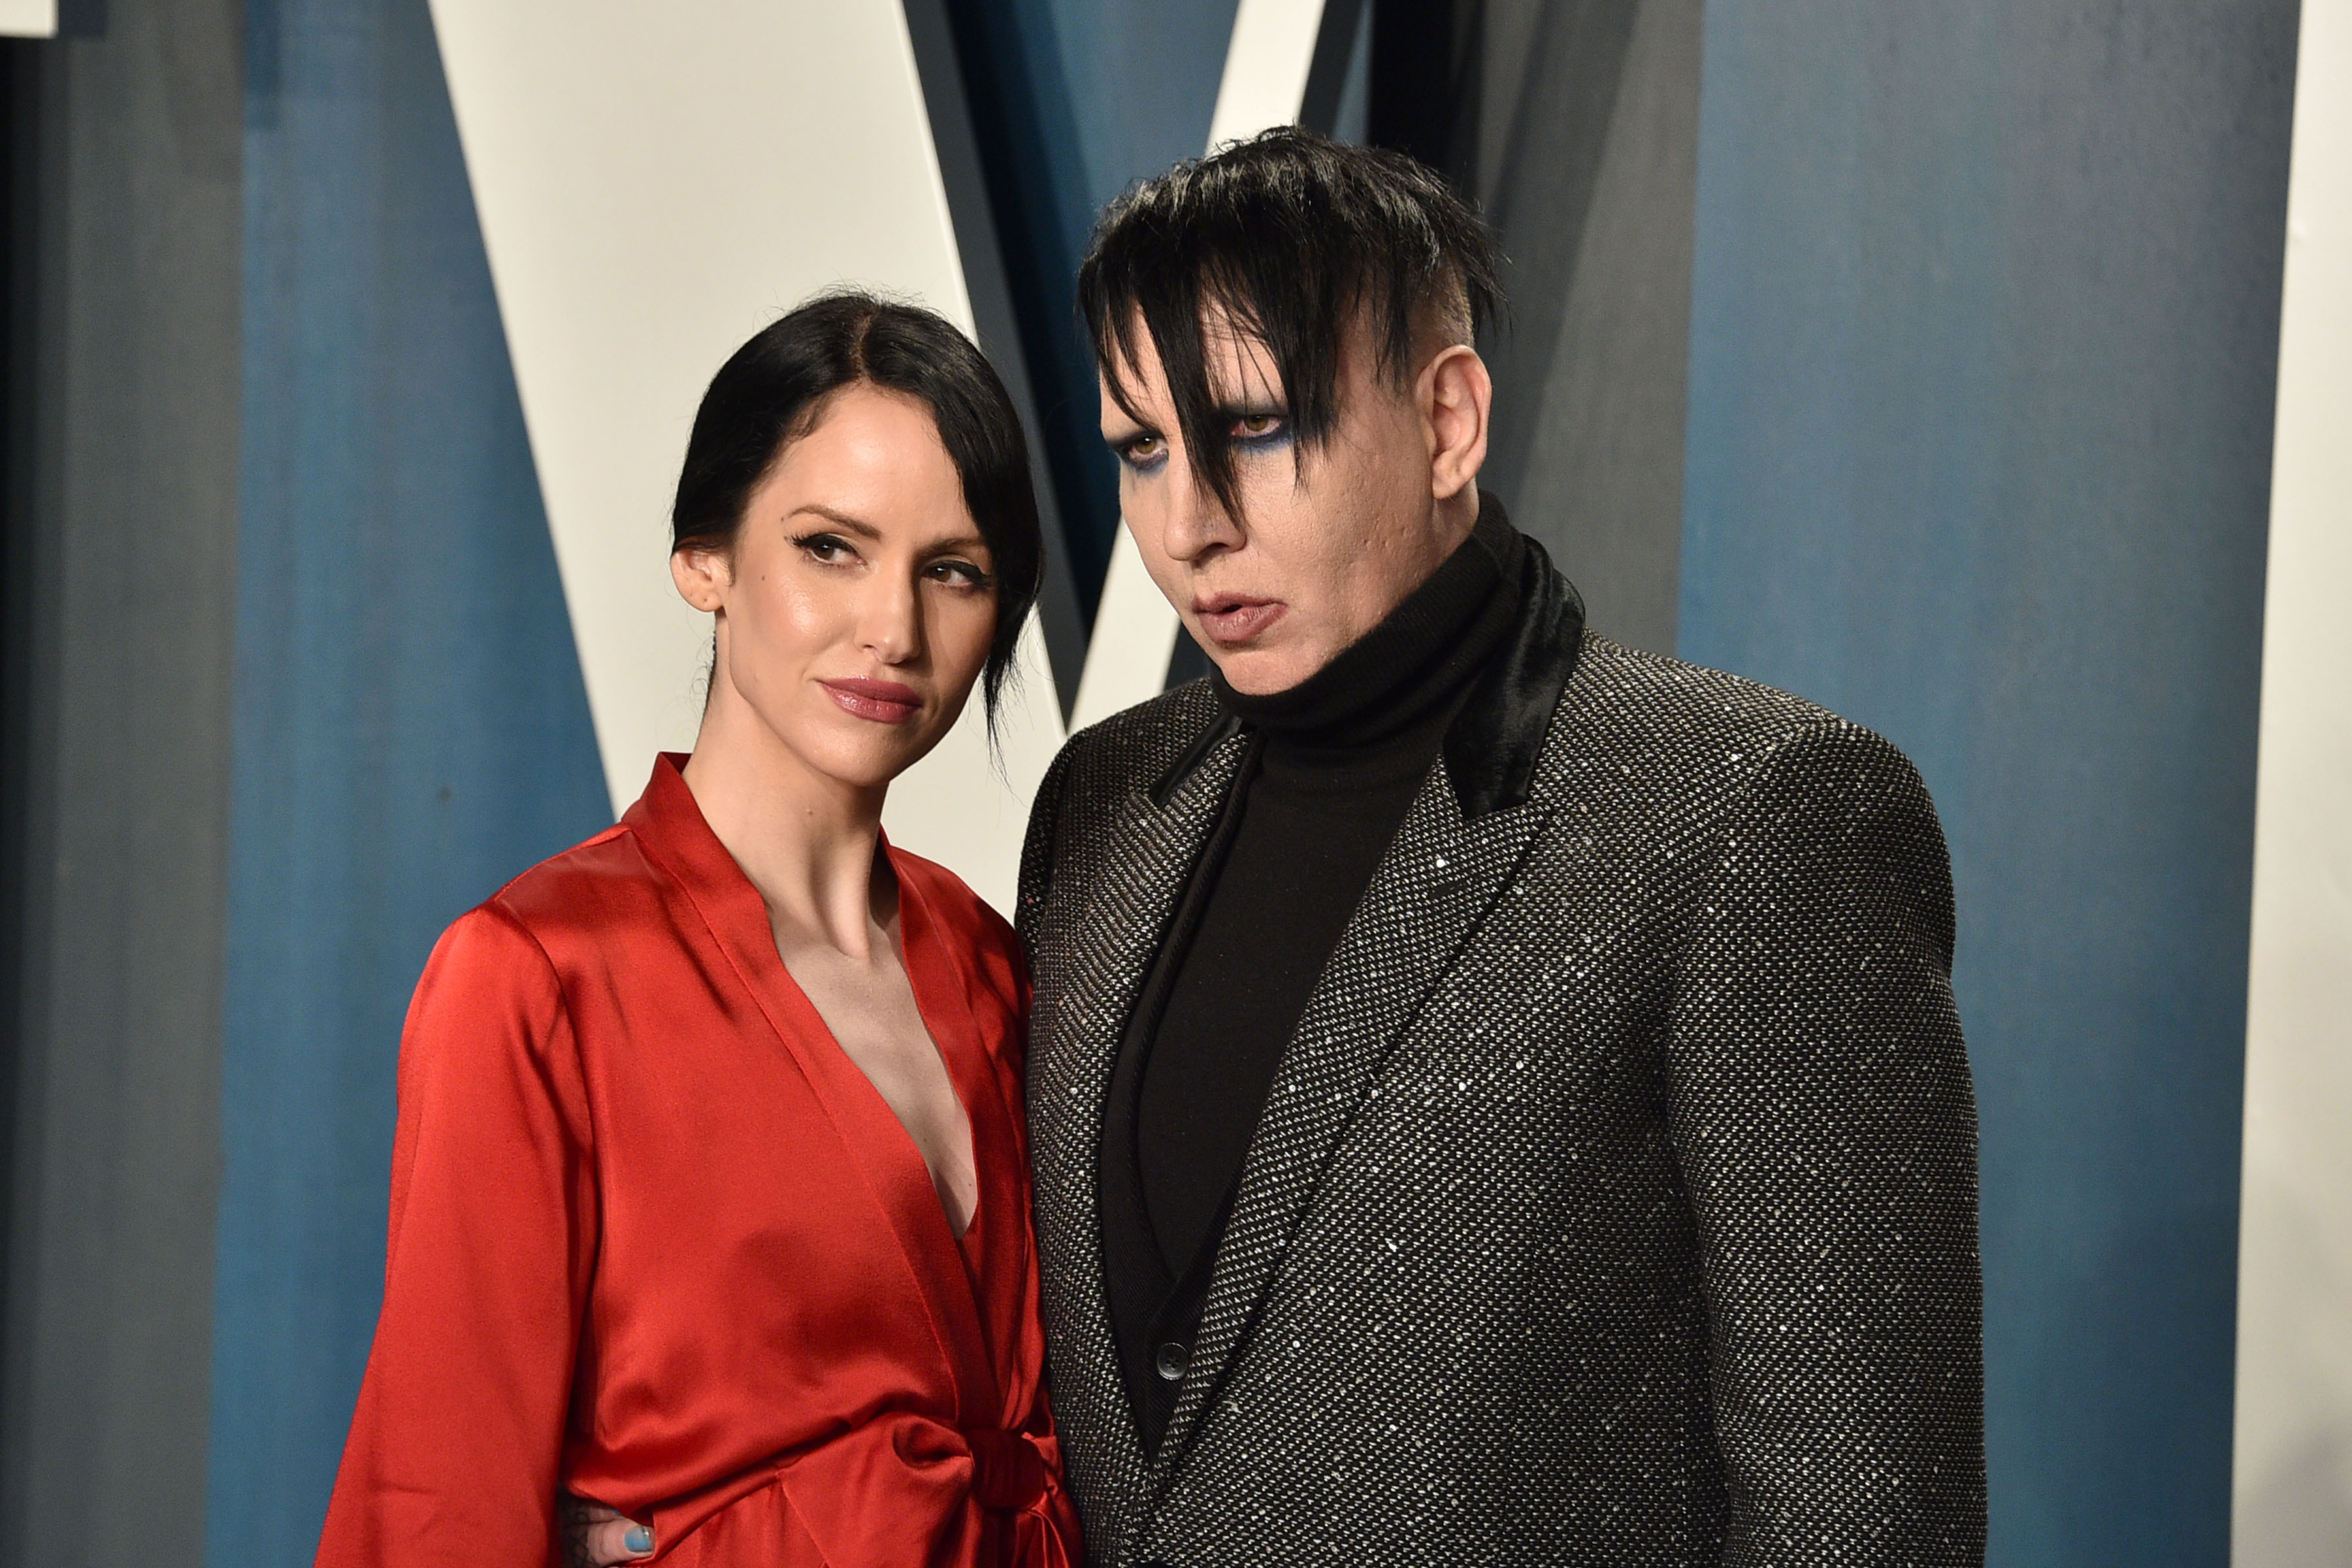 Lindsay Usich and Marilyn Manson attend the 2020 Vanity Fair Oscar Party at Wallis Annenberg Center for the Performing Arts on February 09, 2020 in Beverly Hills, California. (Photo by David Crotty/Patrick McMullan via Getty Images)